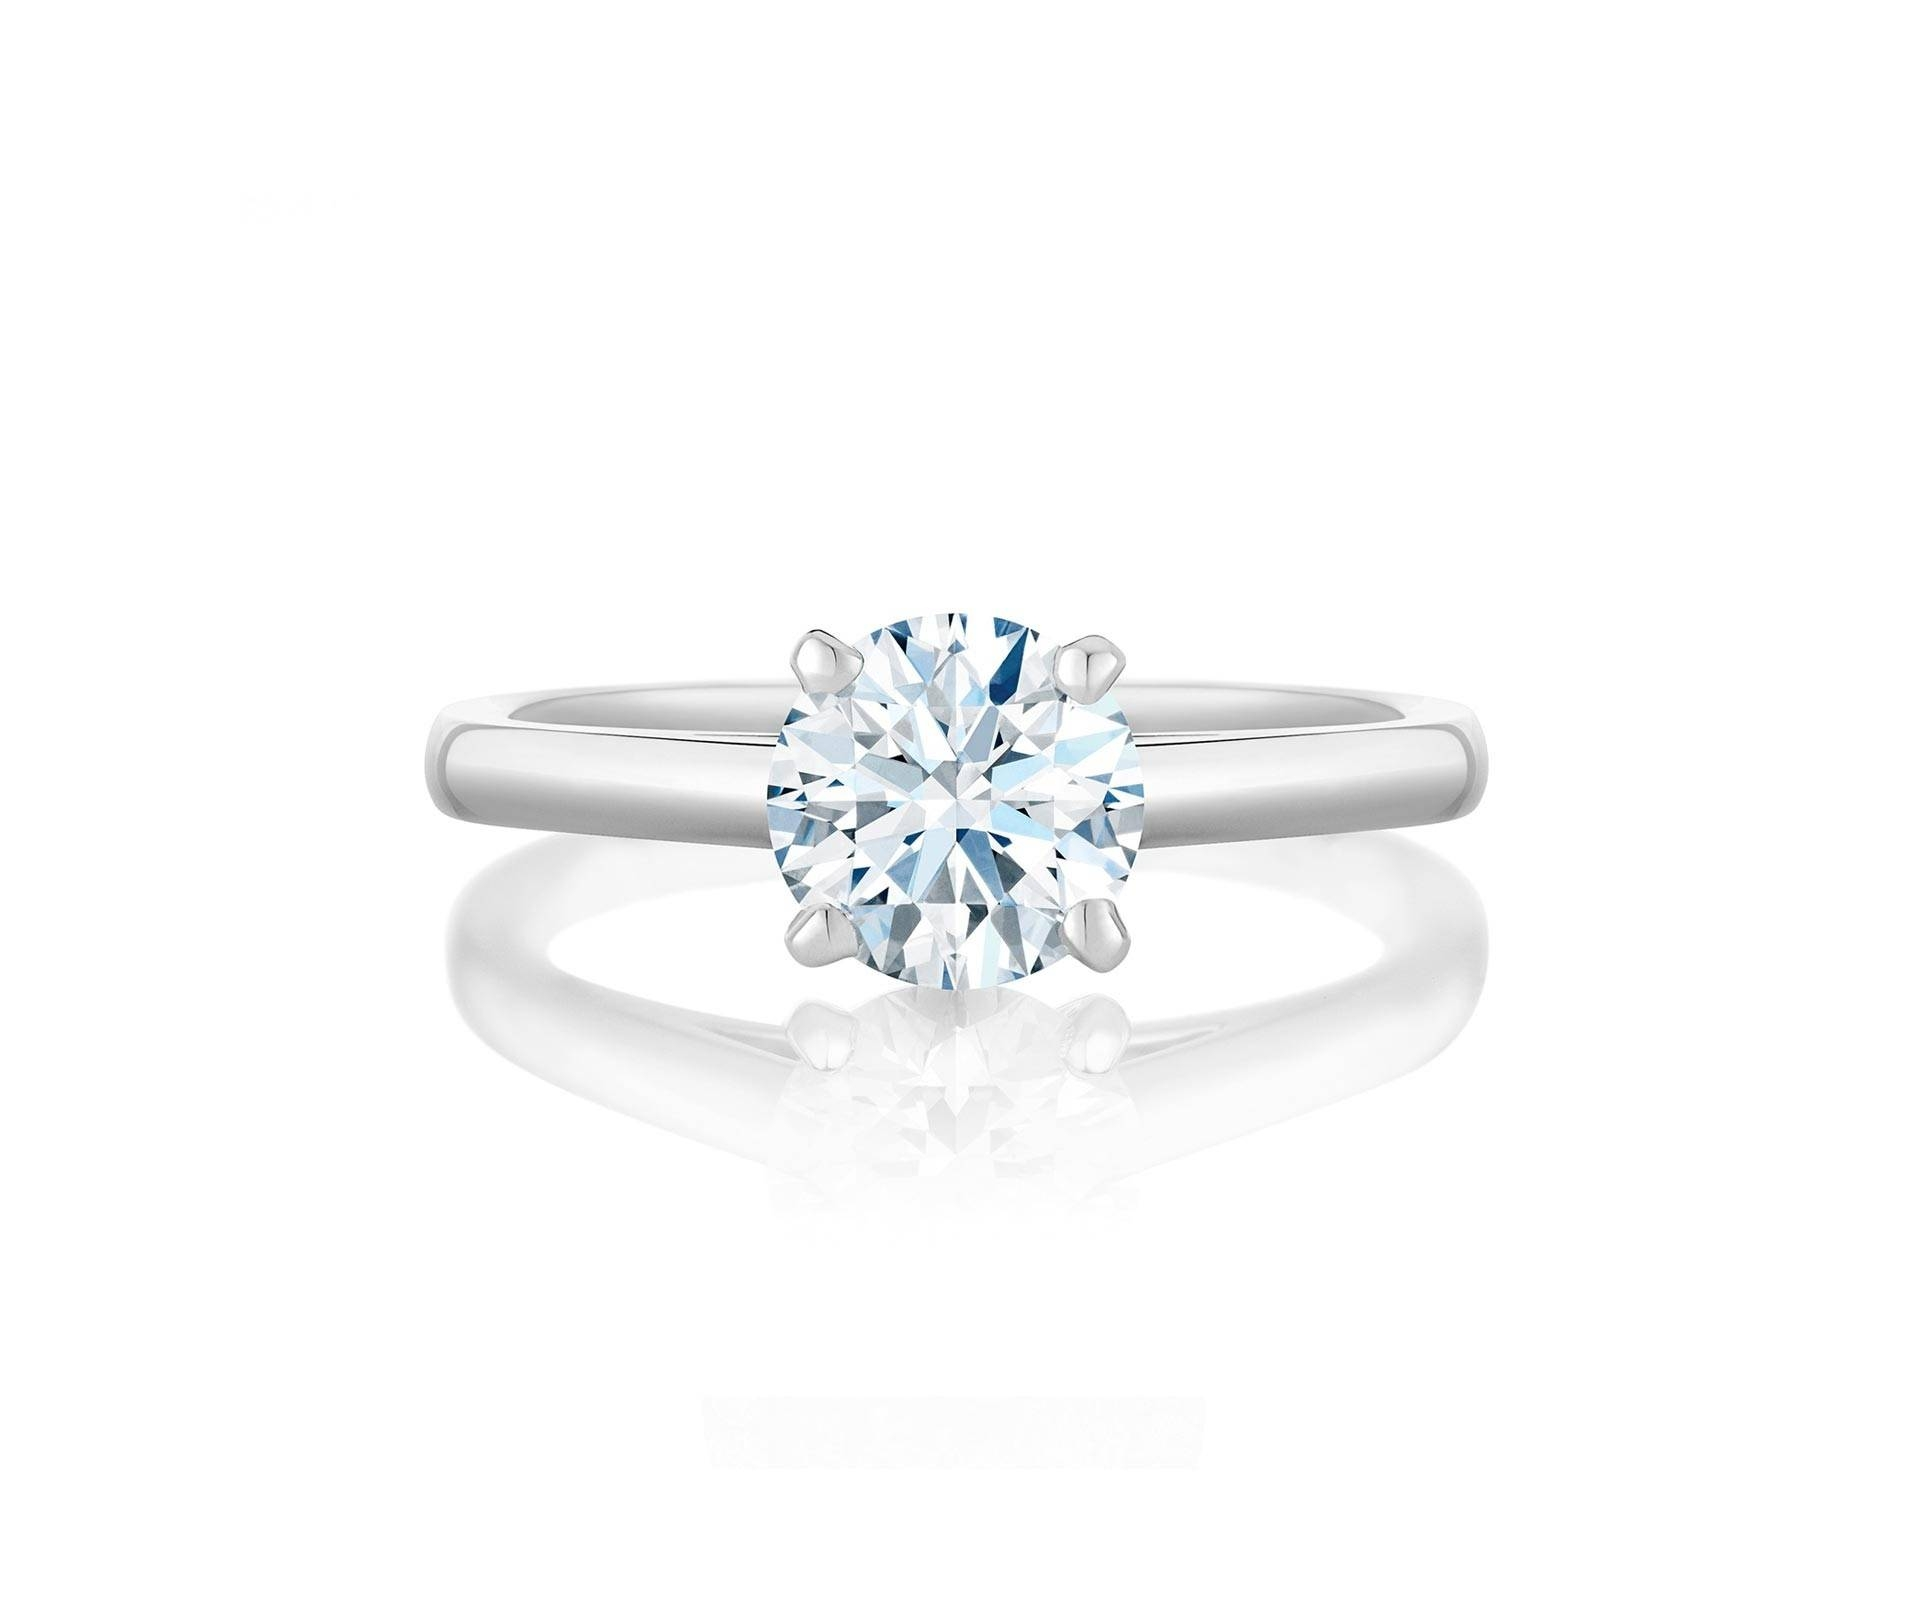 Diamond Engagement Rings & Promise Rings | De Beers Pertaining To Diamonds Engagement Rings (View 10 of 15)